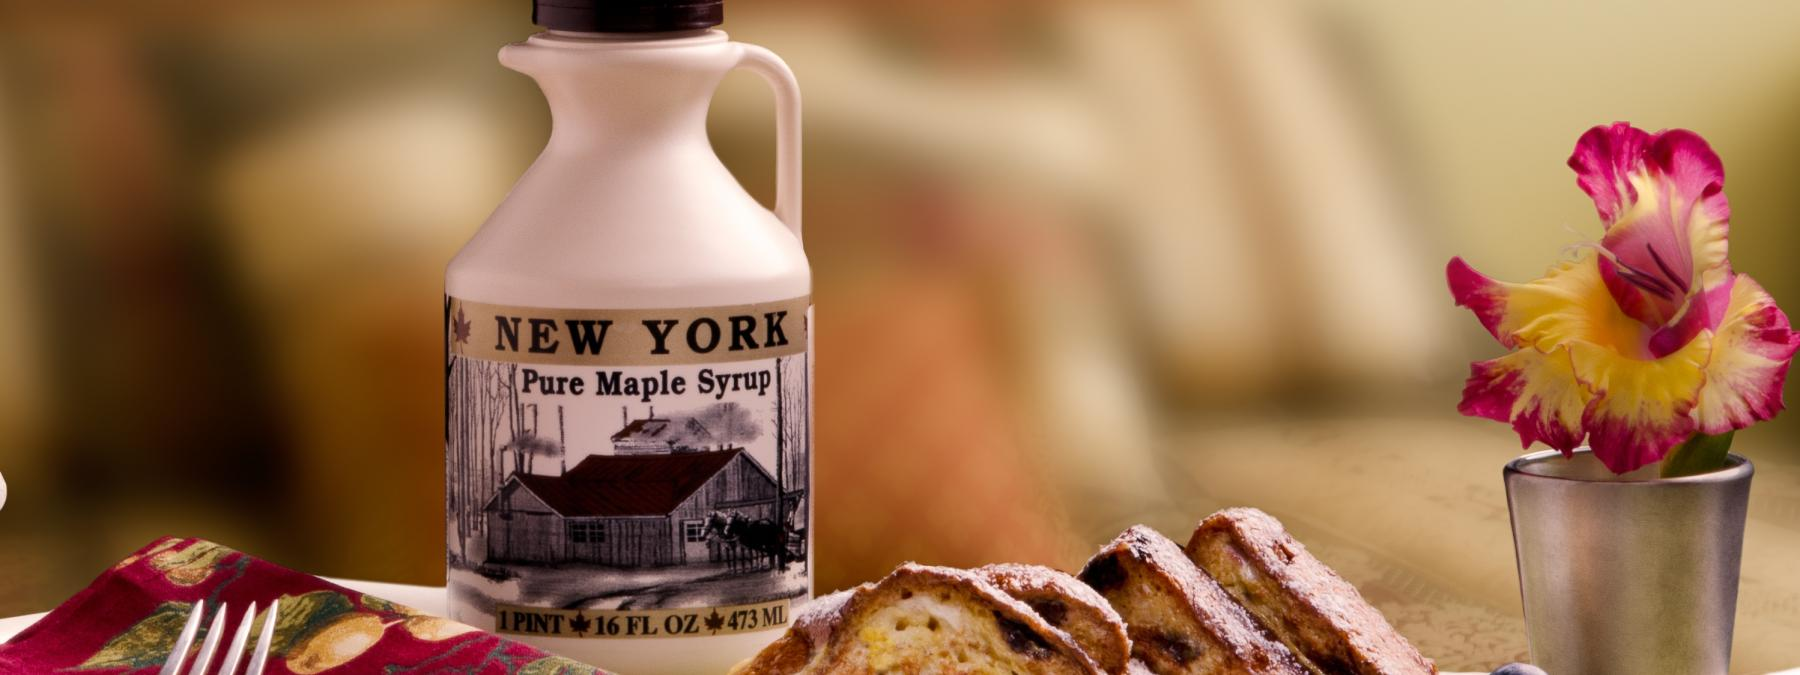 Maple Syrup - Pure, New York State